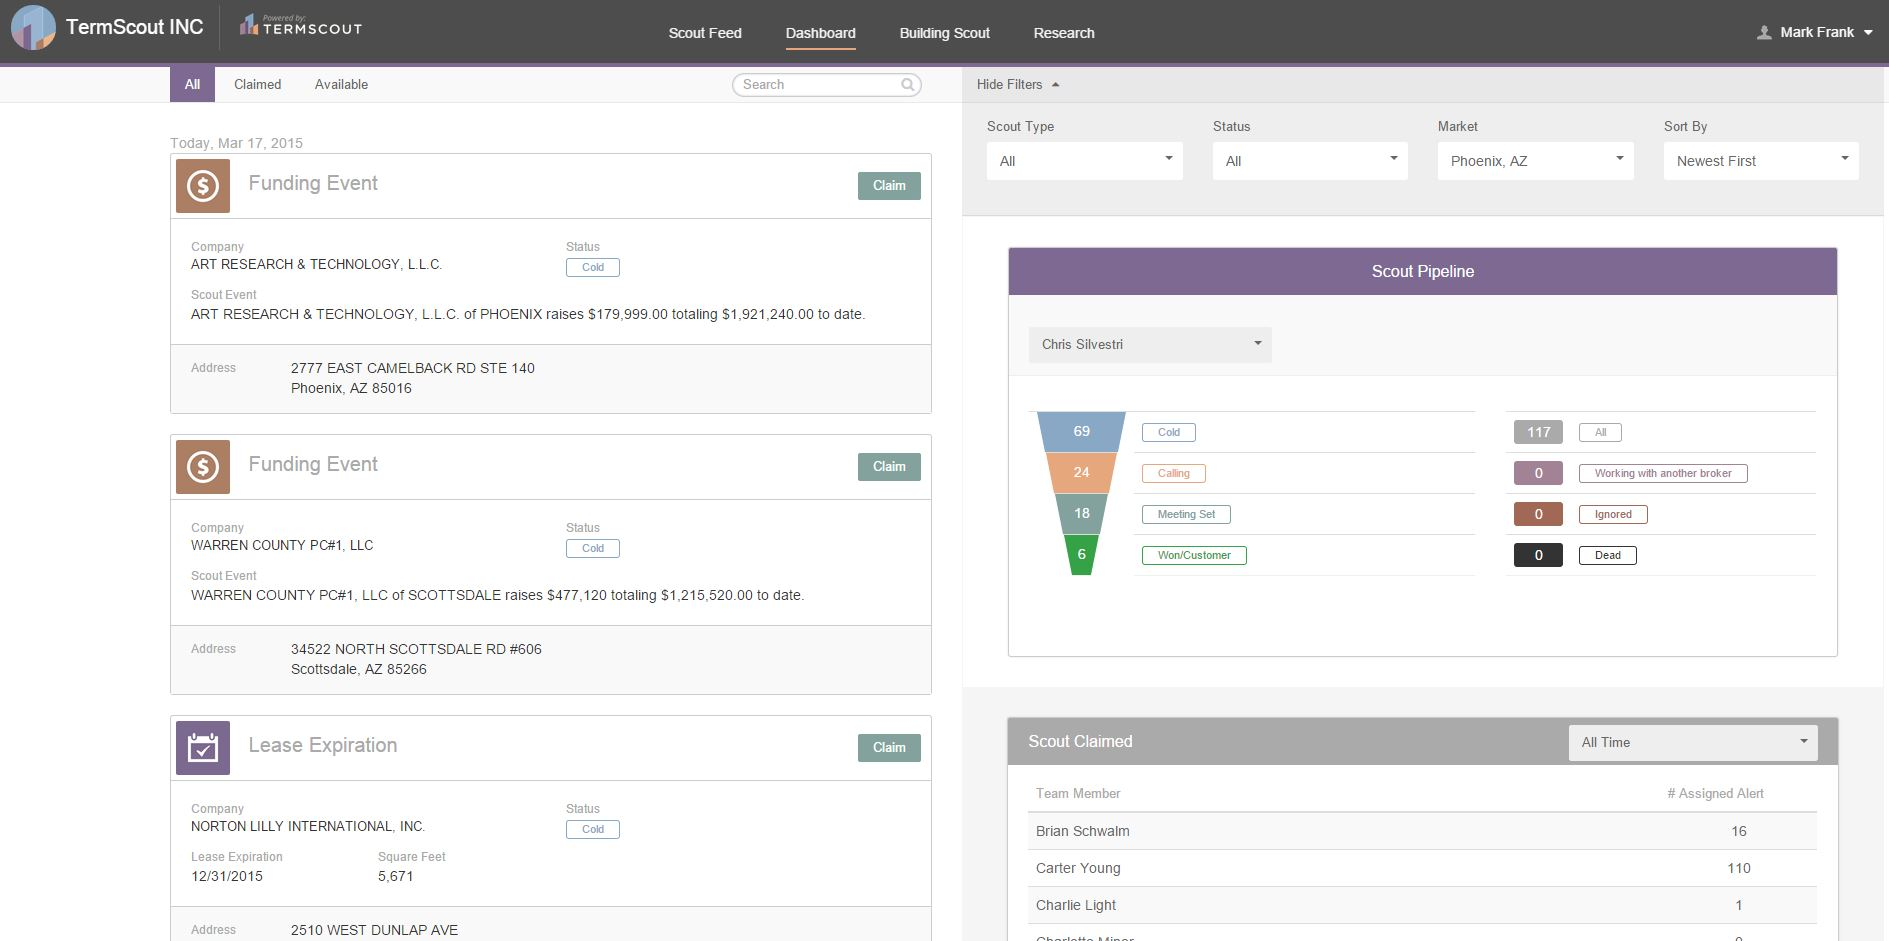 SaleScout Demo - ScoutFeed Manager Dashboard View